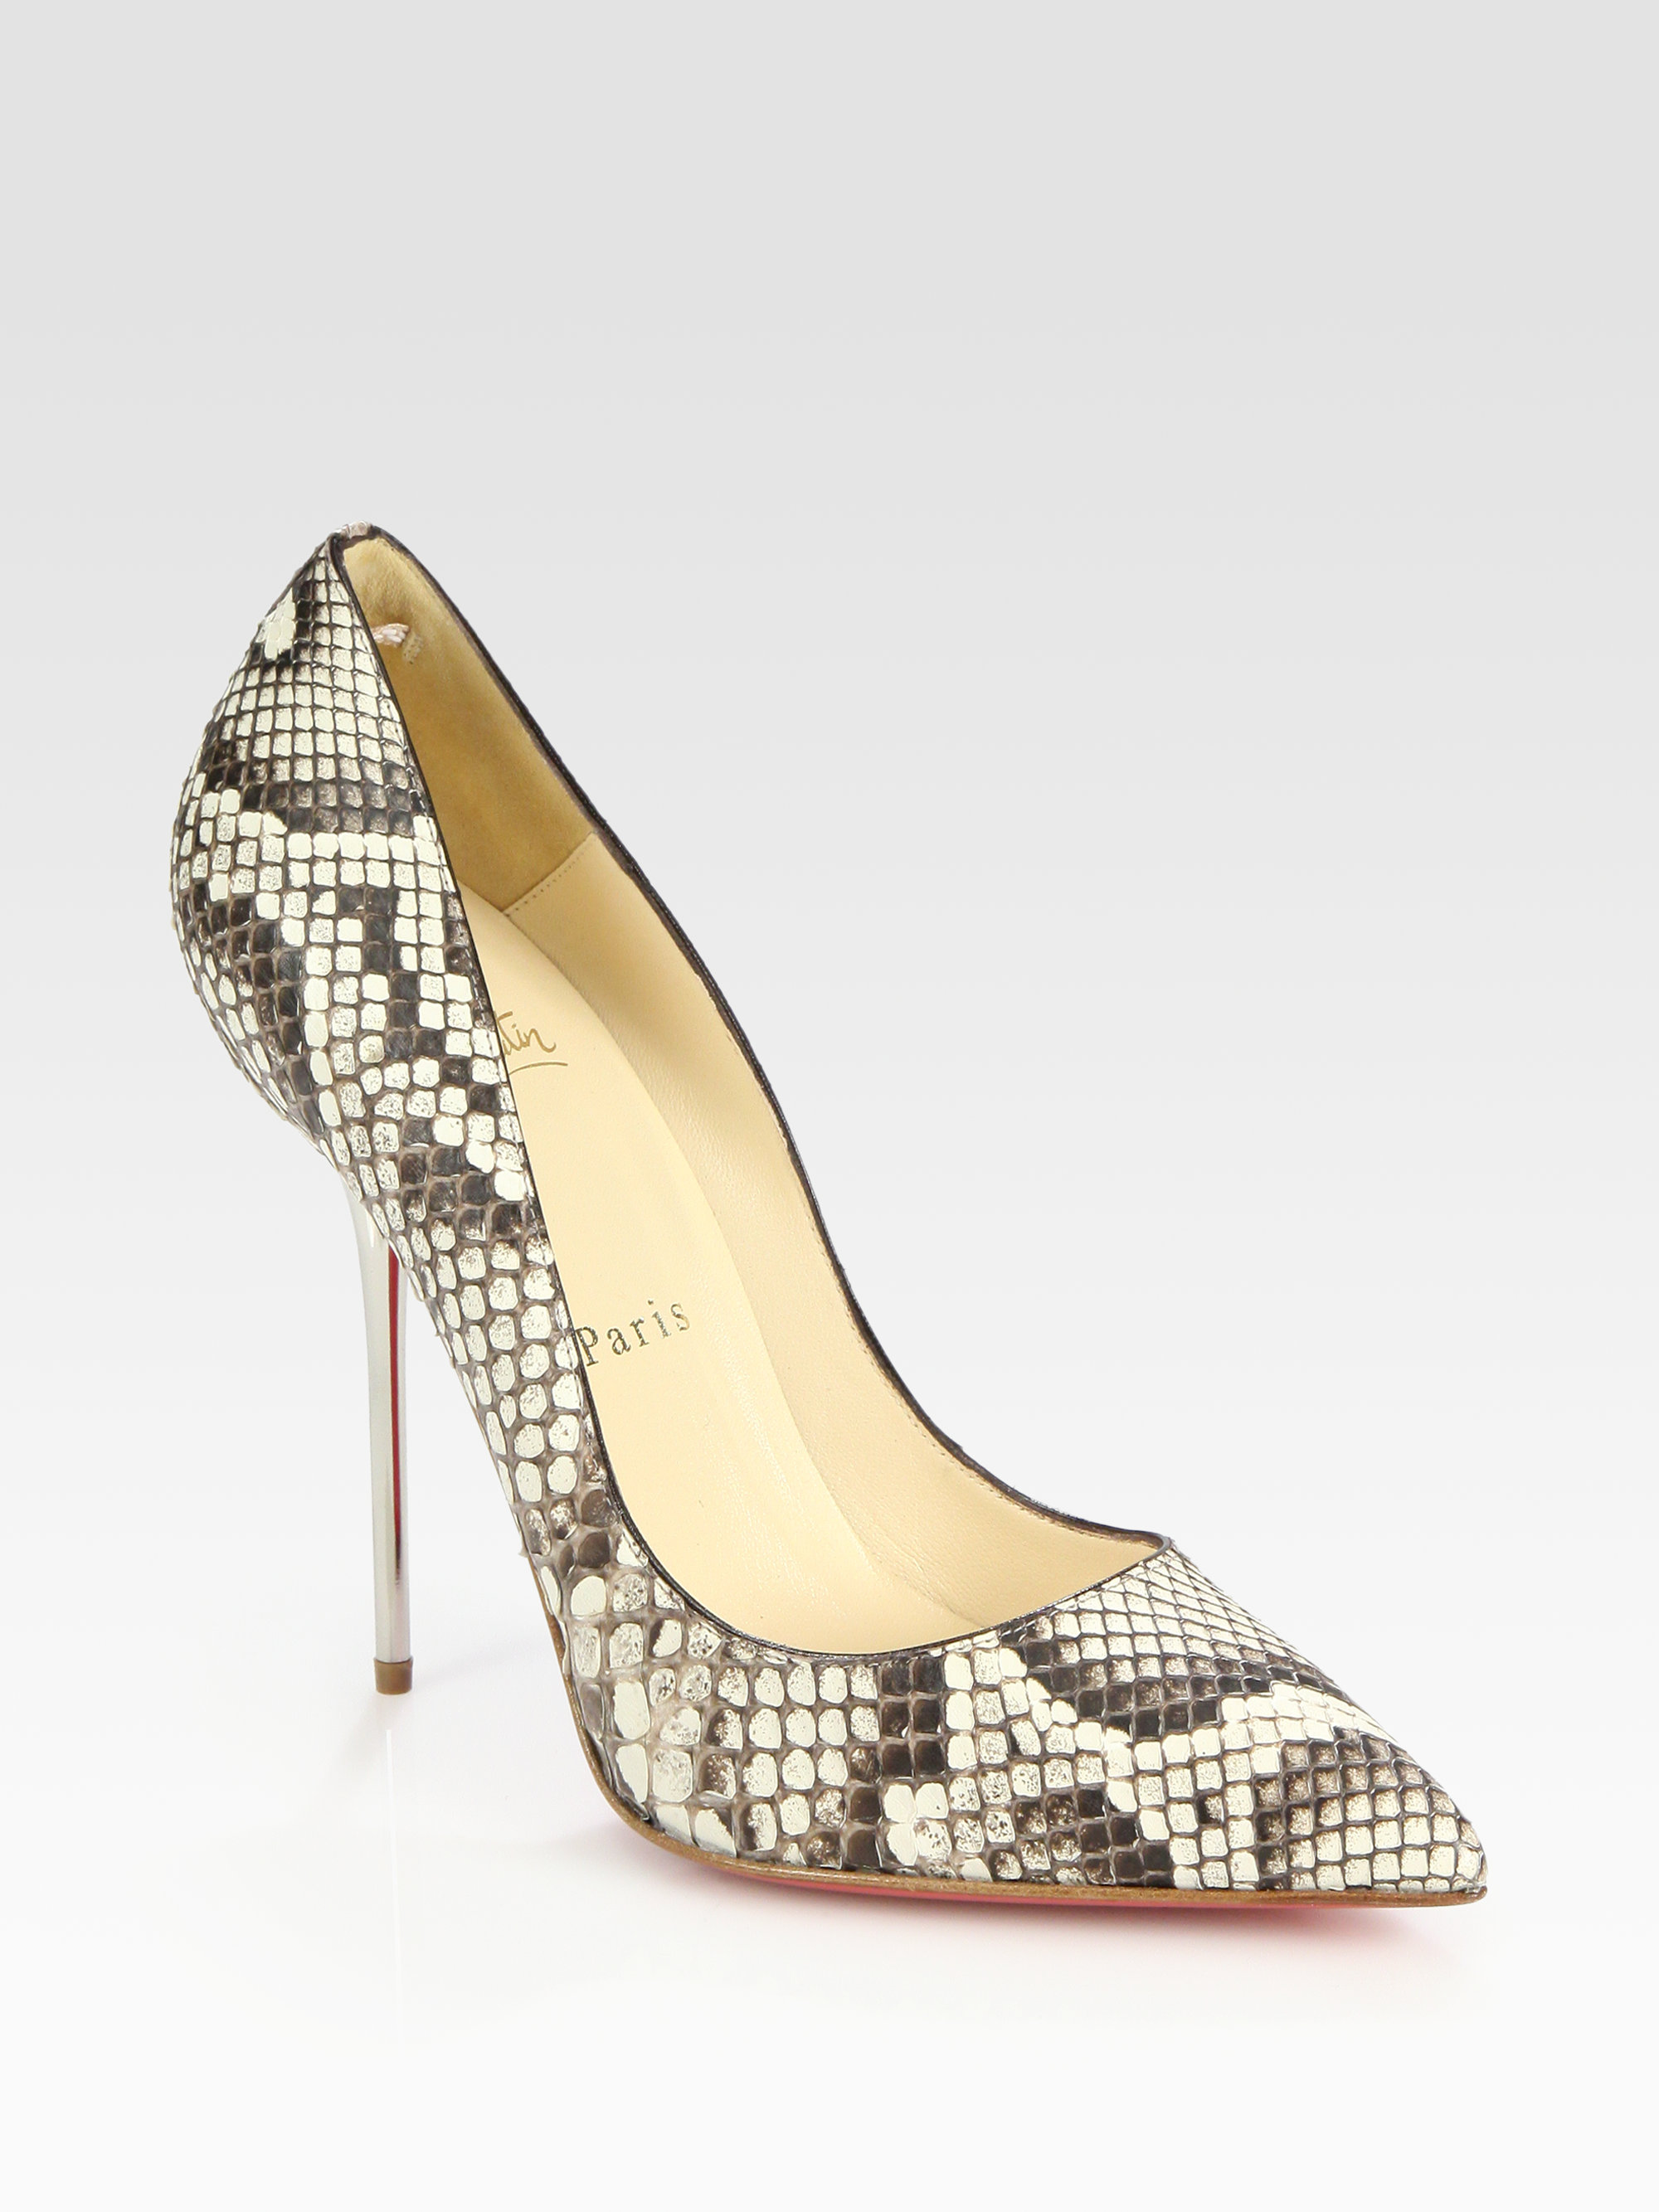 christian louboutin pointed-toe pumps Grey python | The Little ...